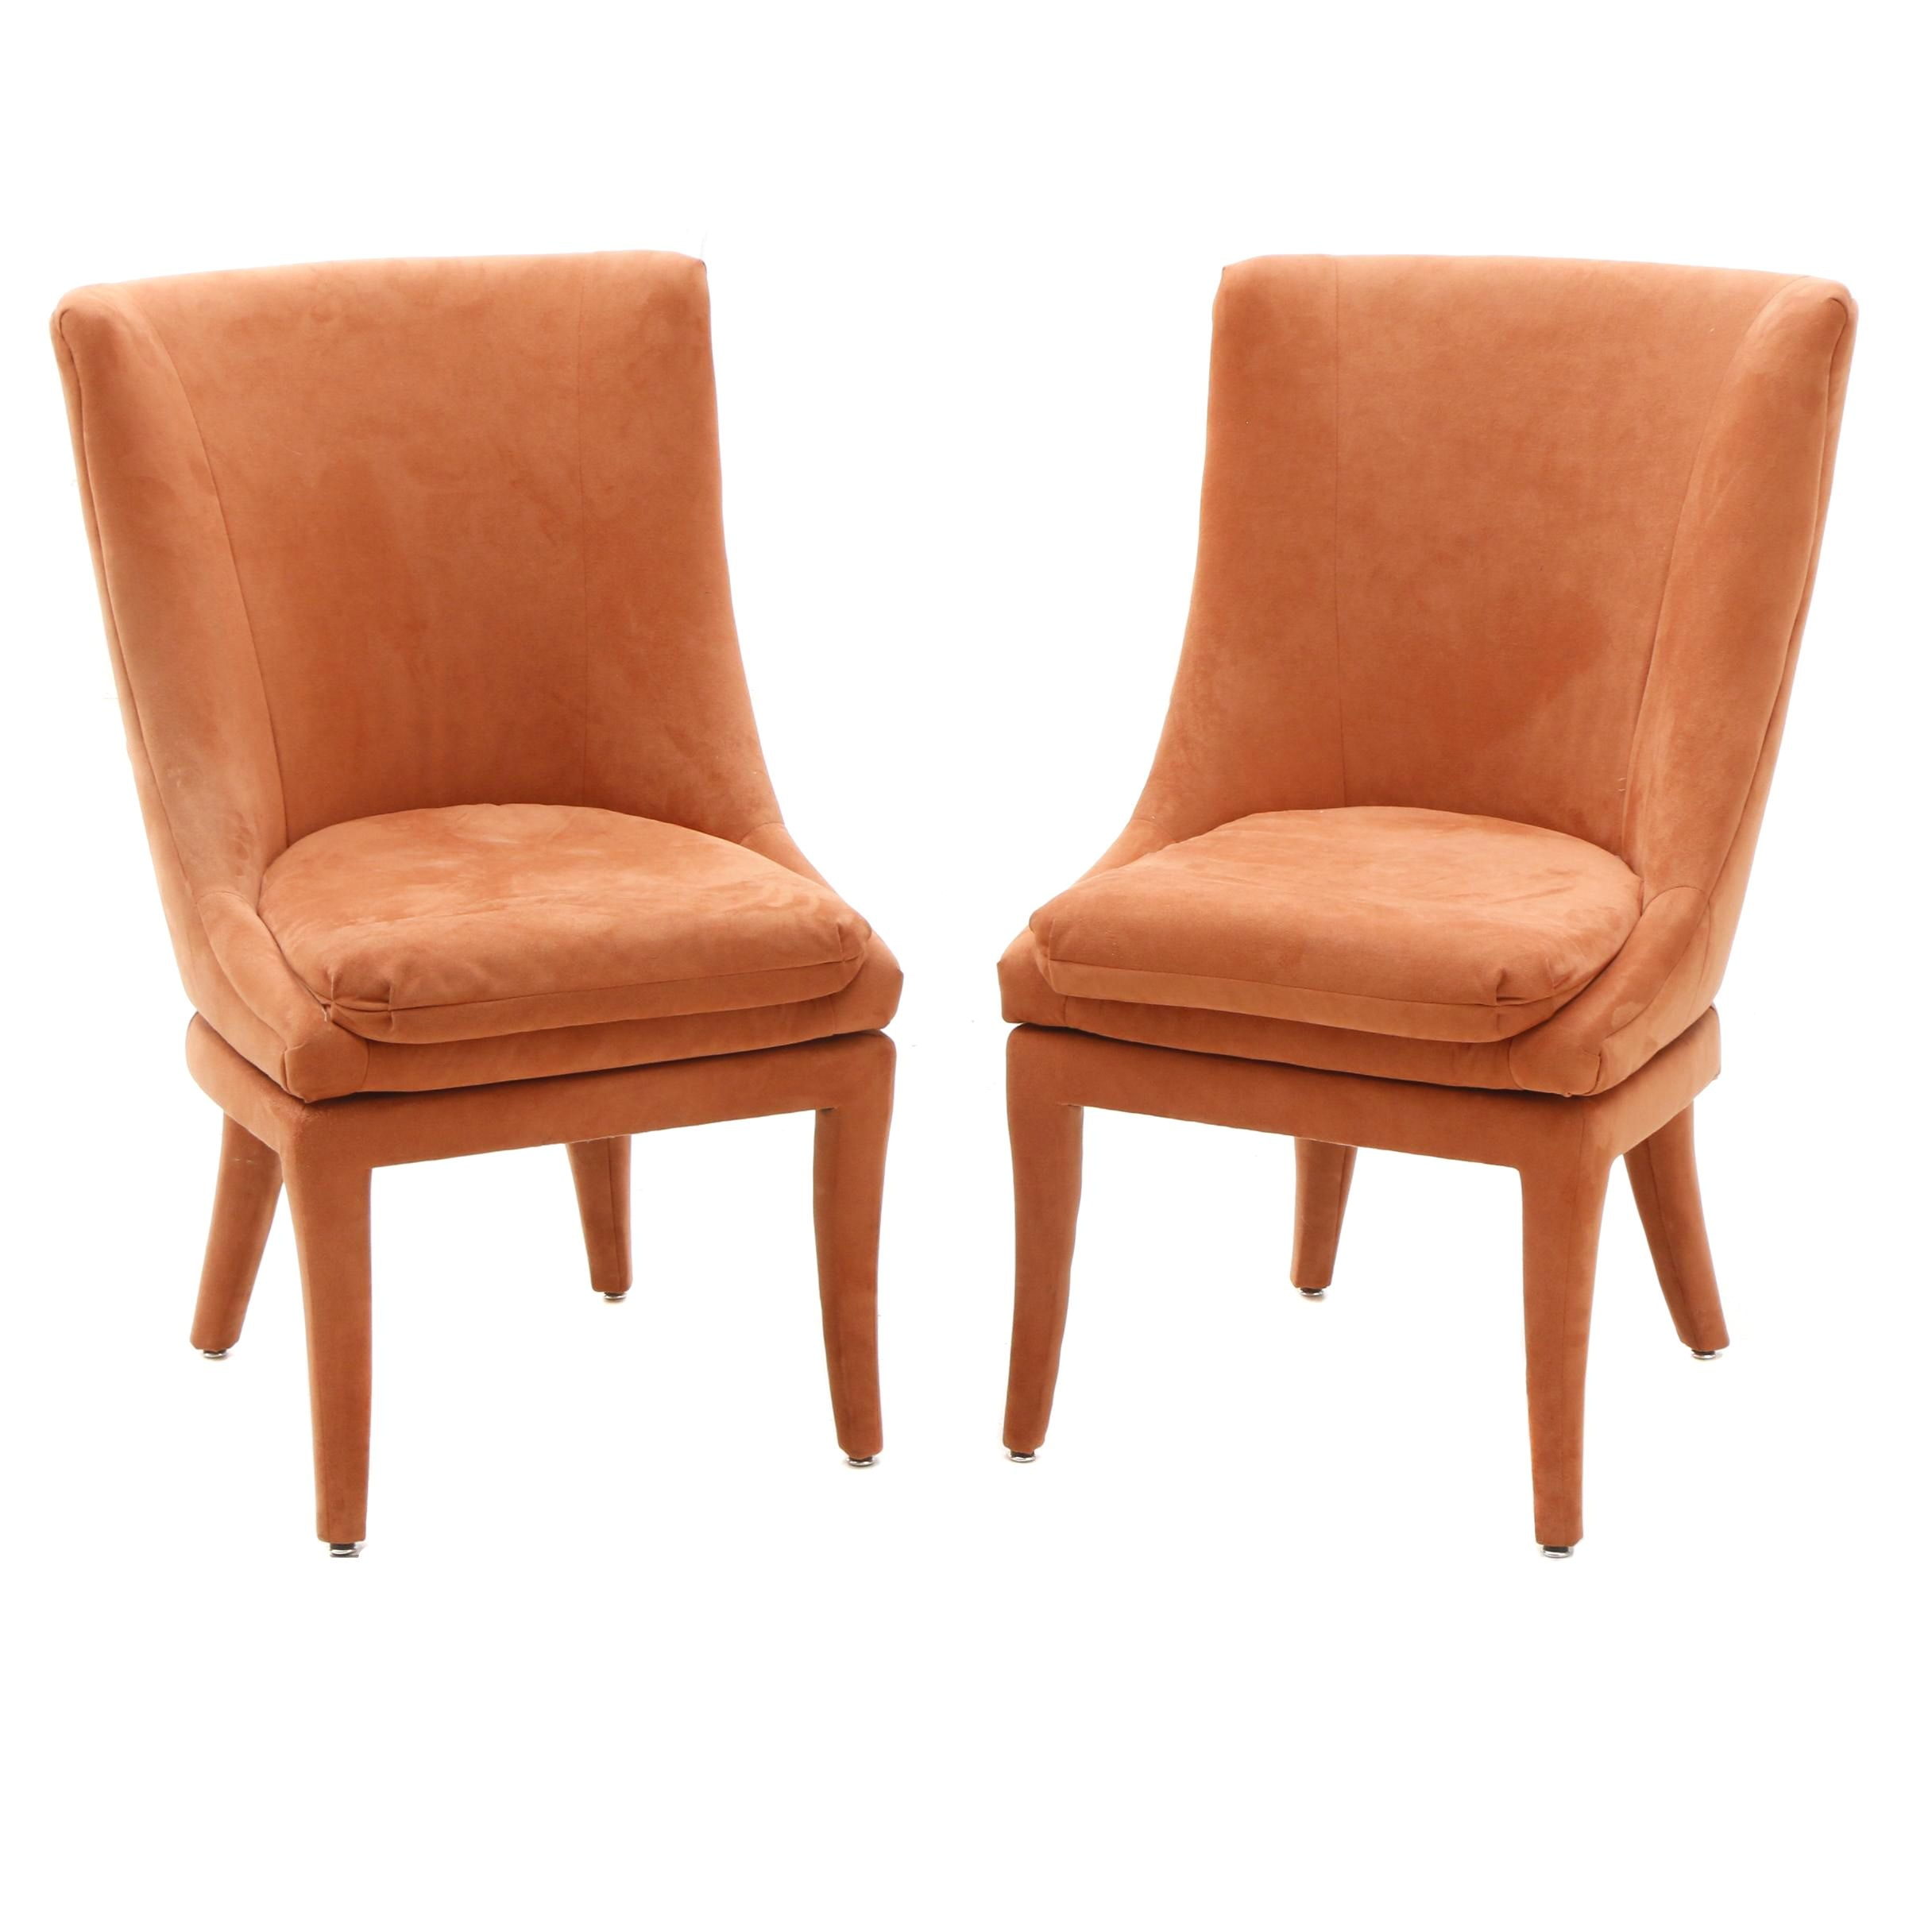 Pair of Modern Style Swivel Chairs